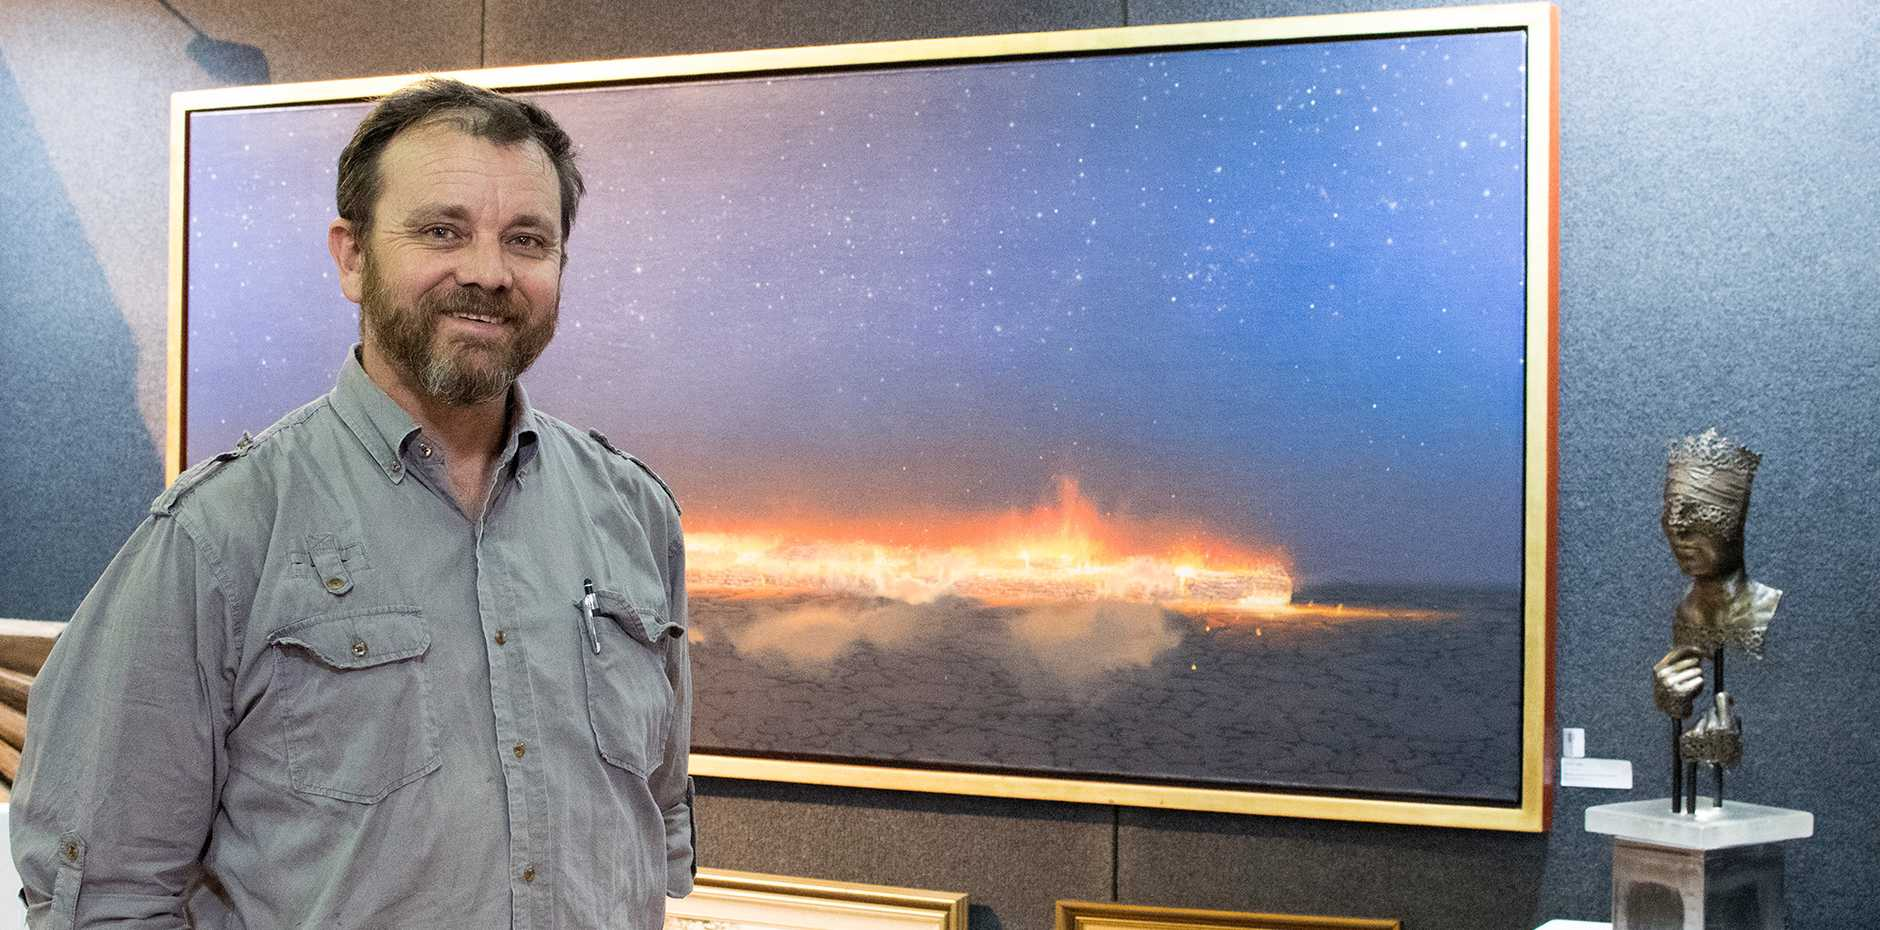 2019 RME Downlands Art Exhibition curator, Evan Hollis is pictured in front of Night (Starlight Line) by Tim Storrier